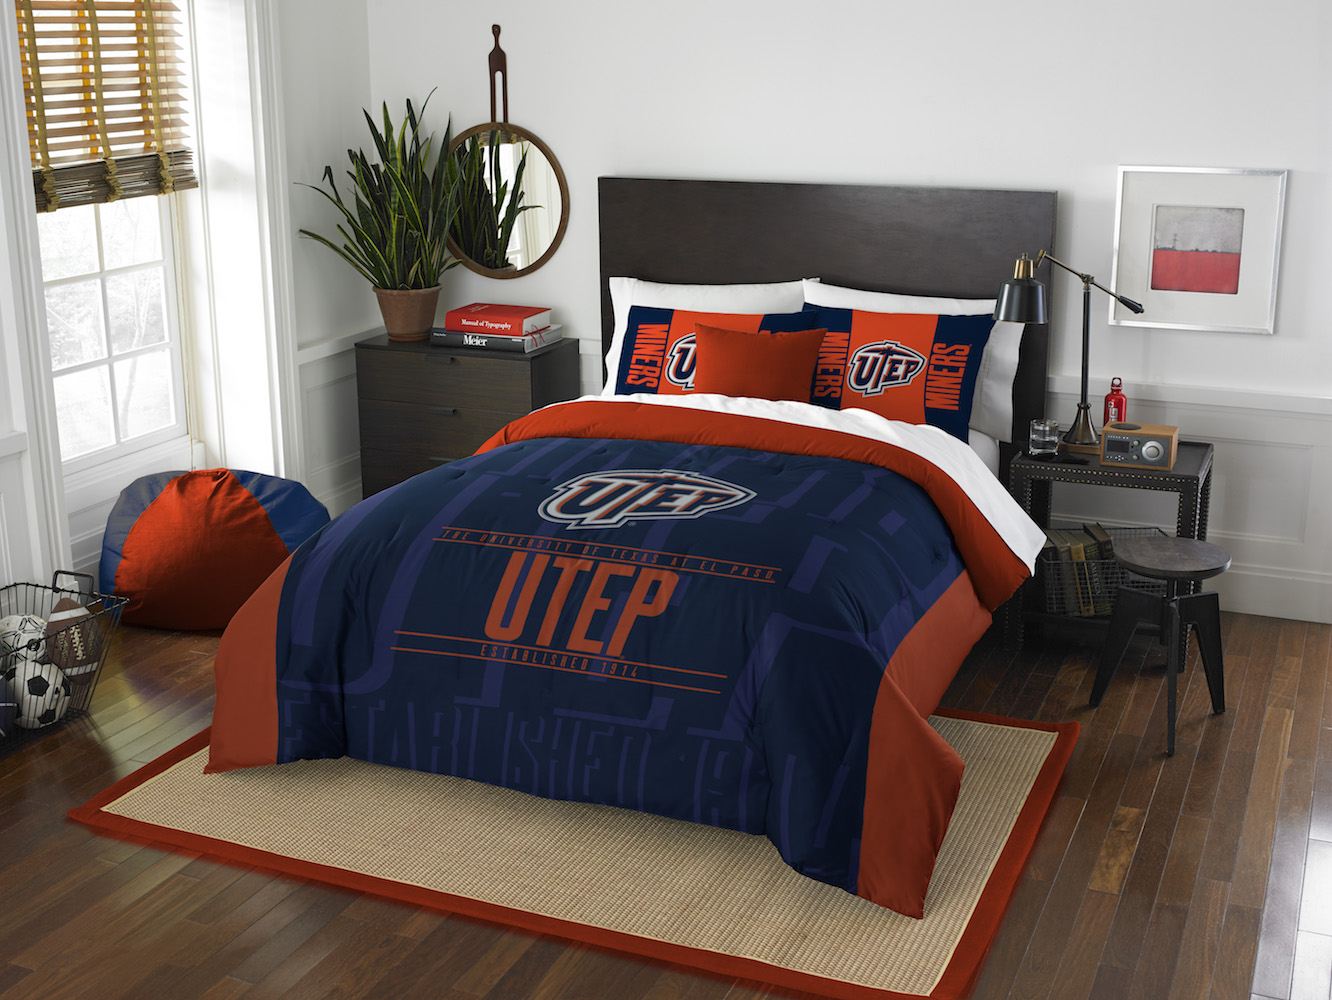 UTEP Miners QUEEN/FULL size Comforter and 2 Shams